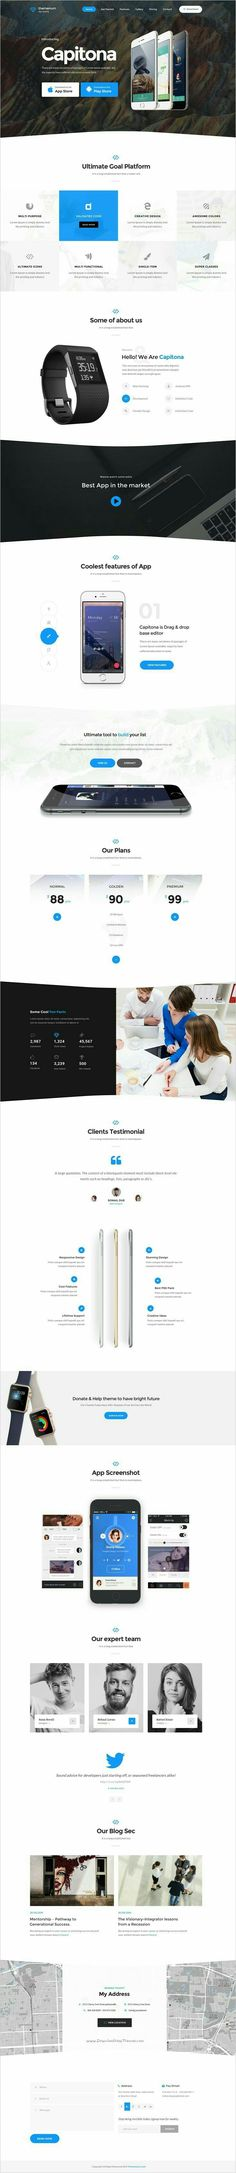 32 Best Bootstrap Website Templates Free Download images